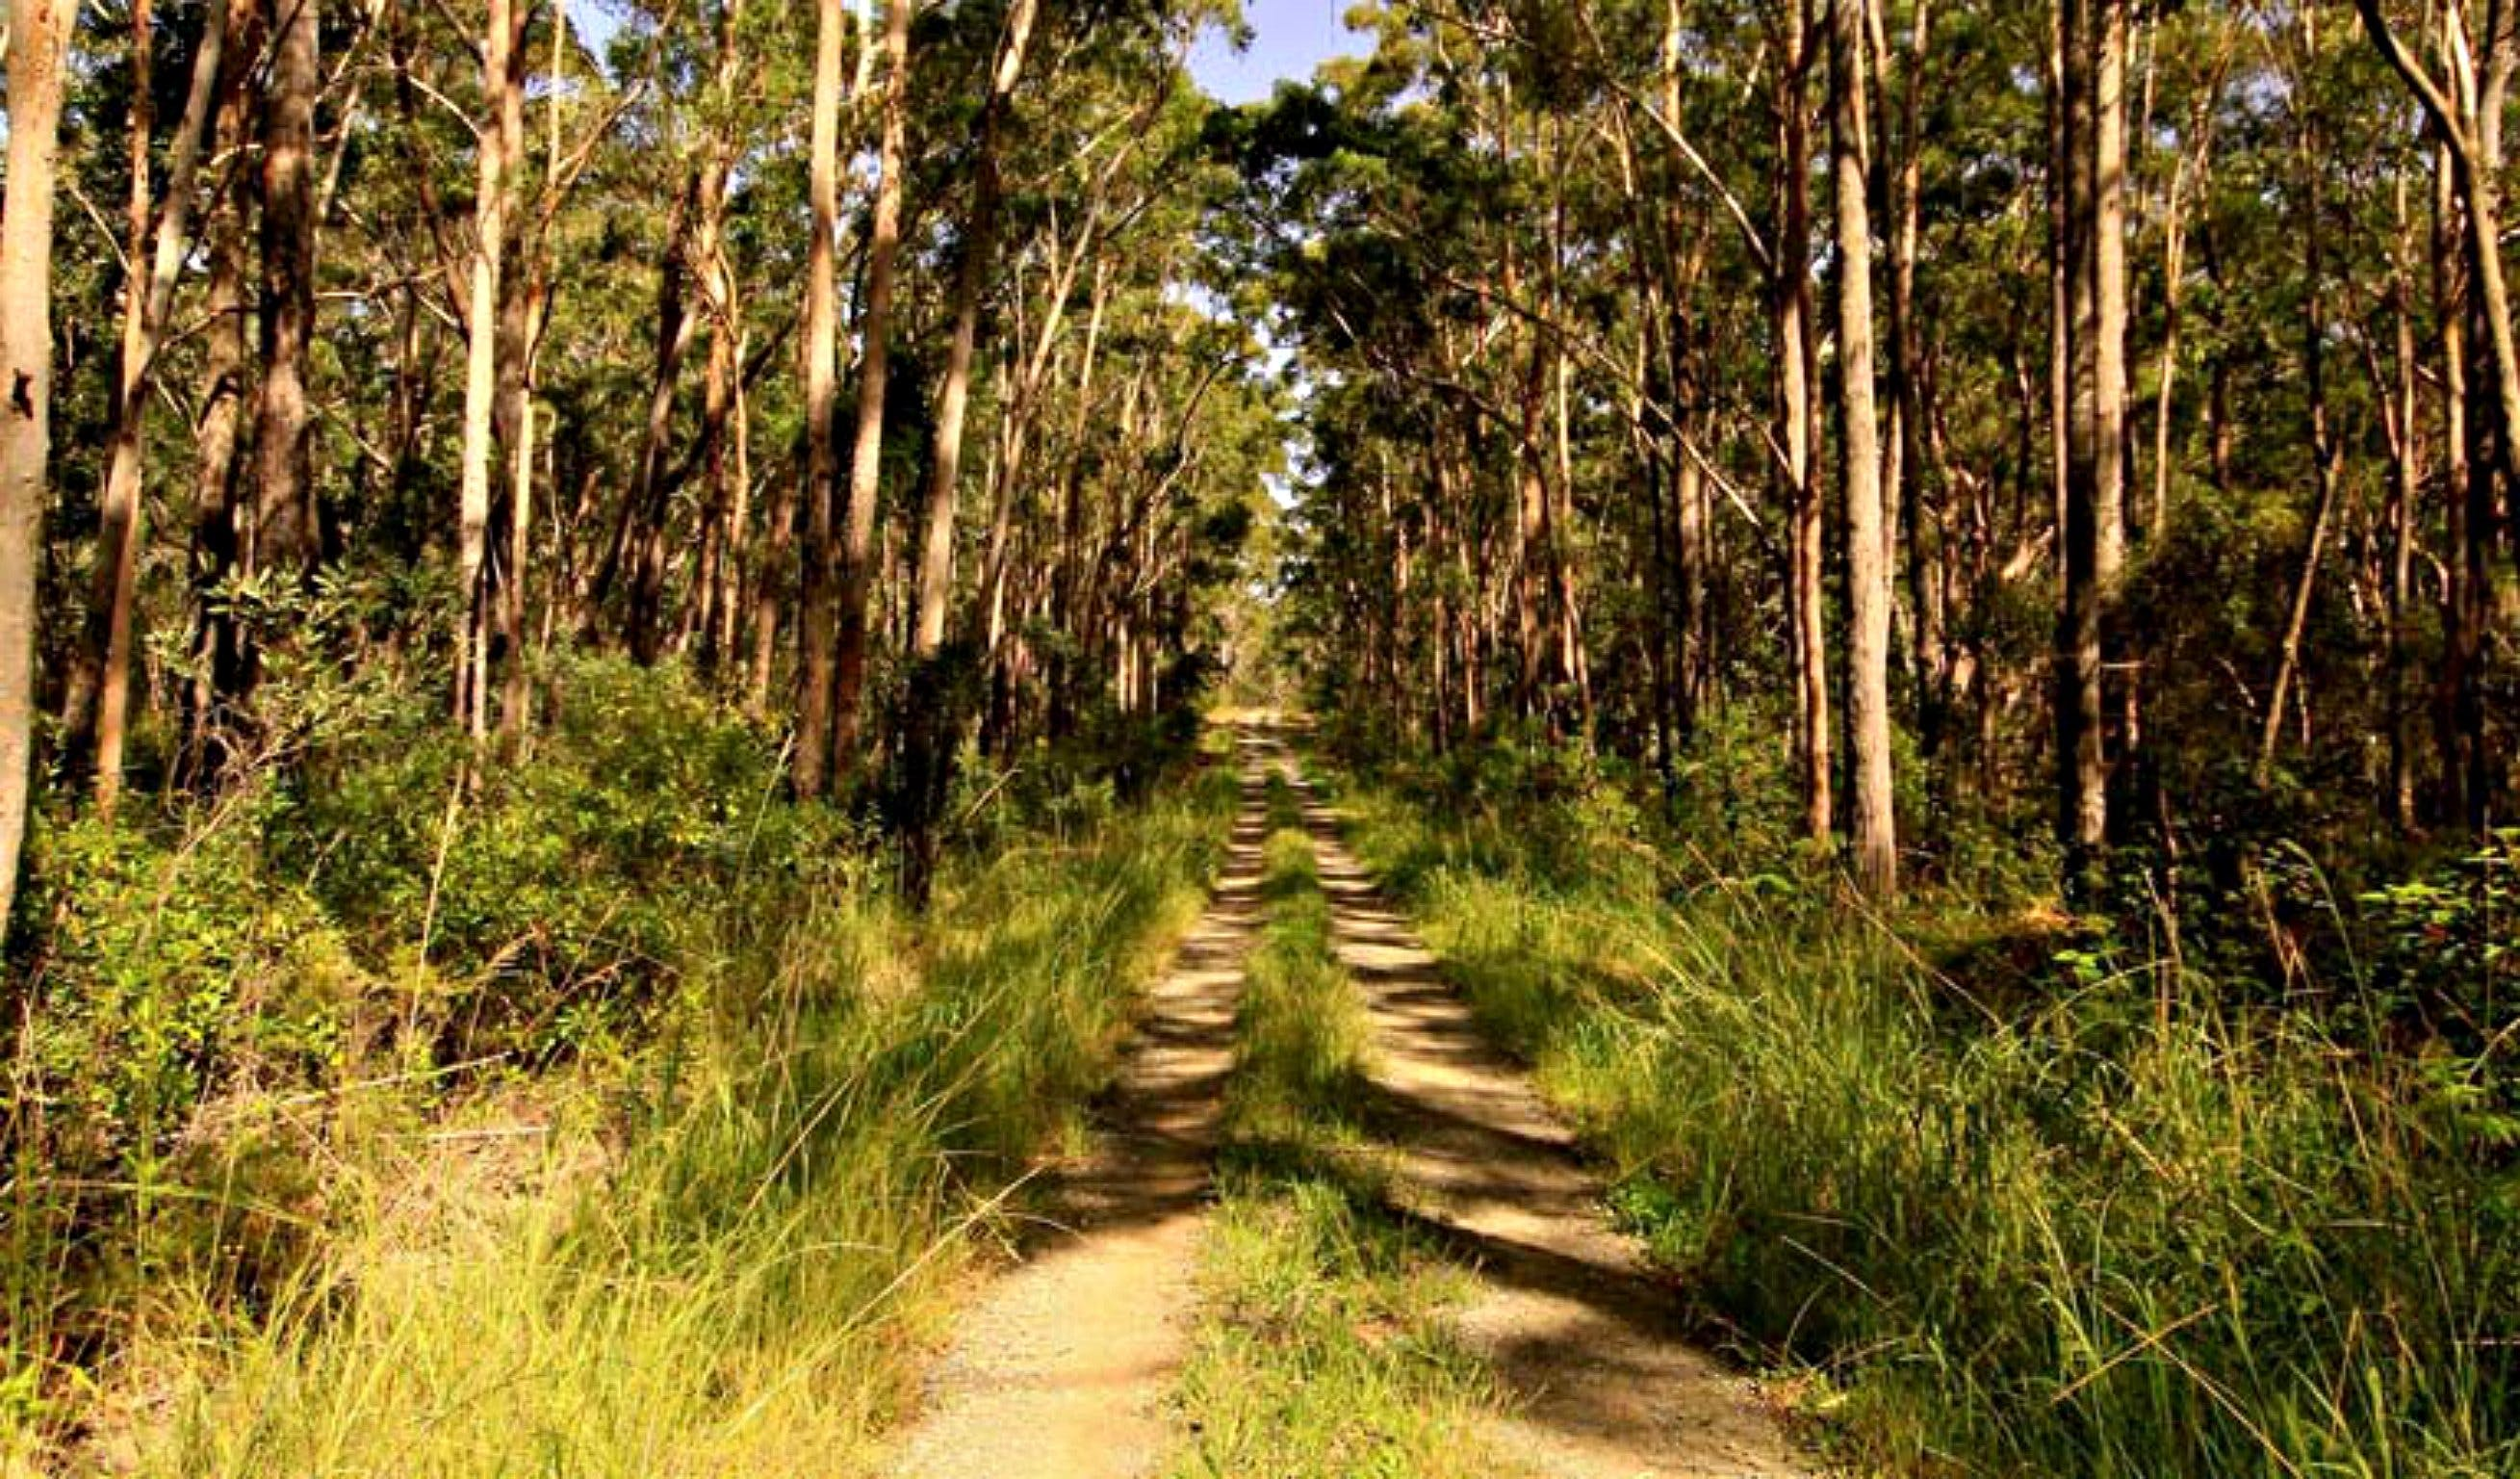 Mining Road Fire Trail Old Gibber Road Rire Trail - Victoria Tourism